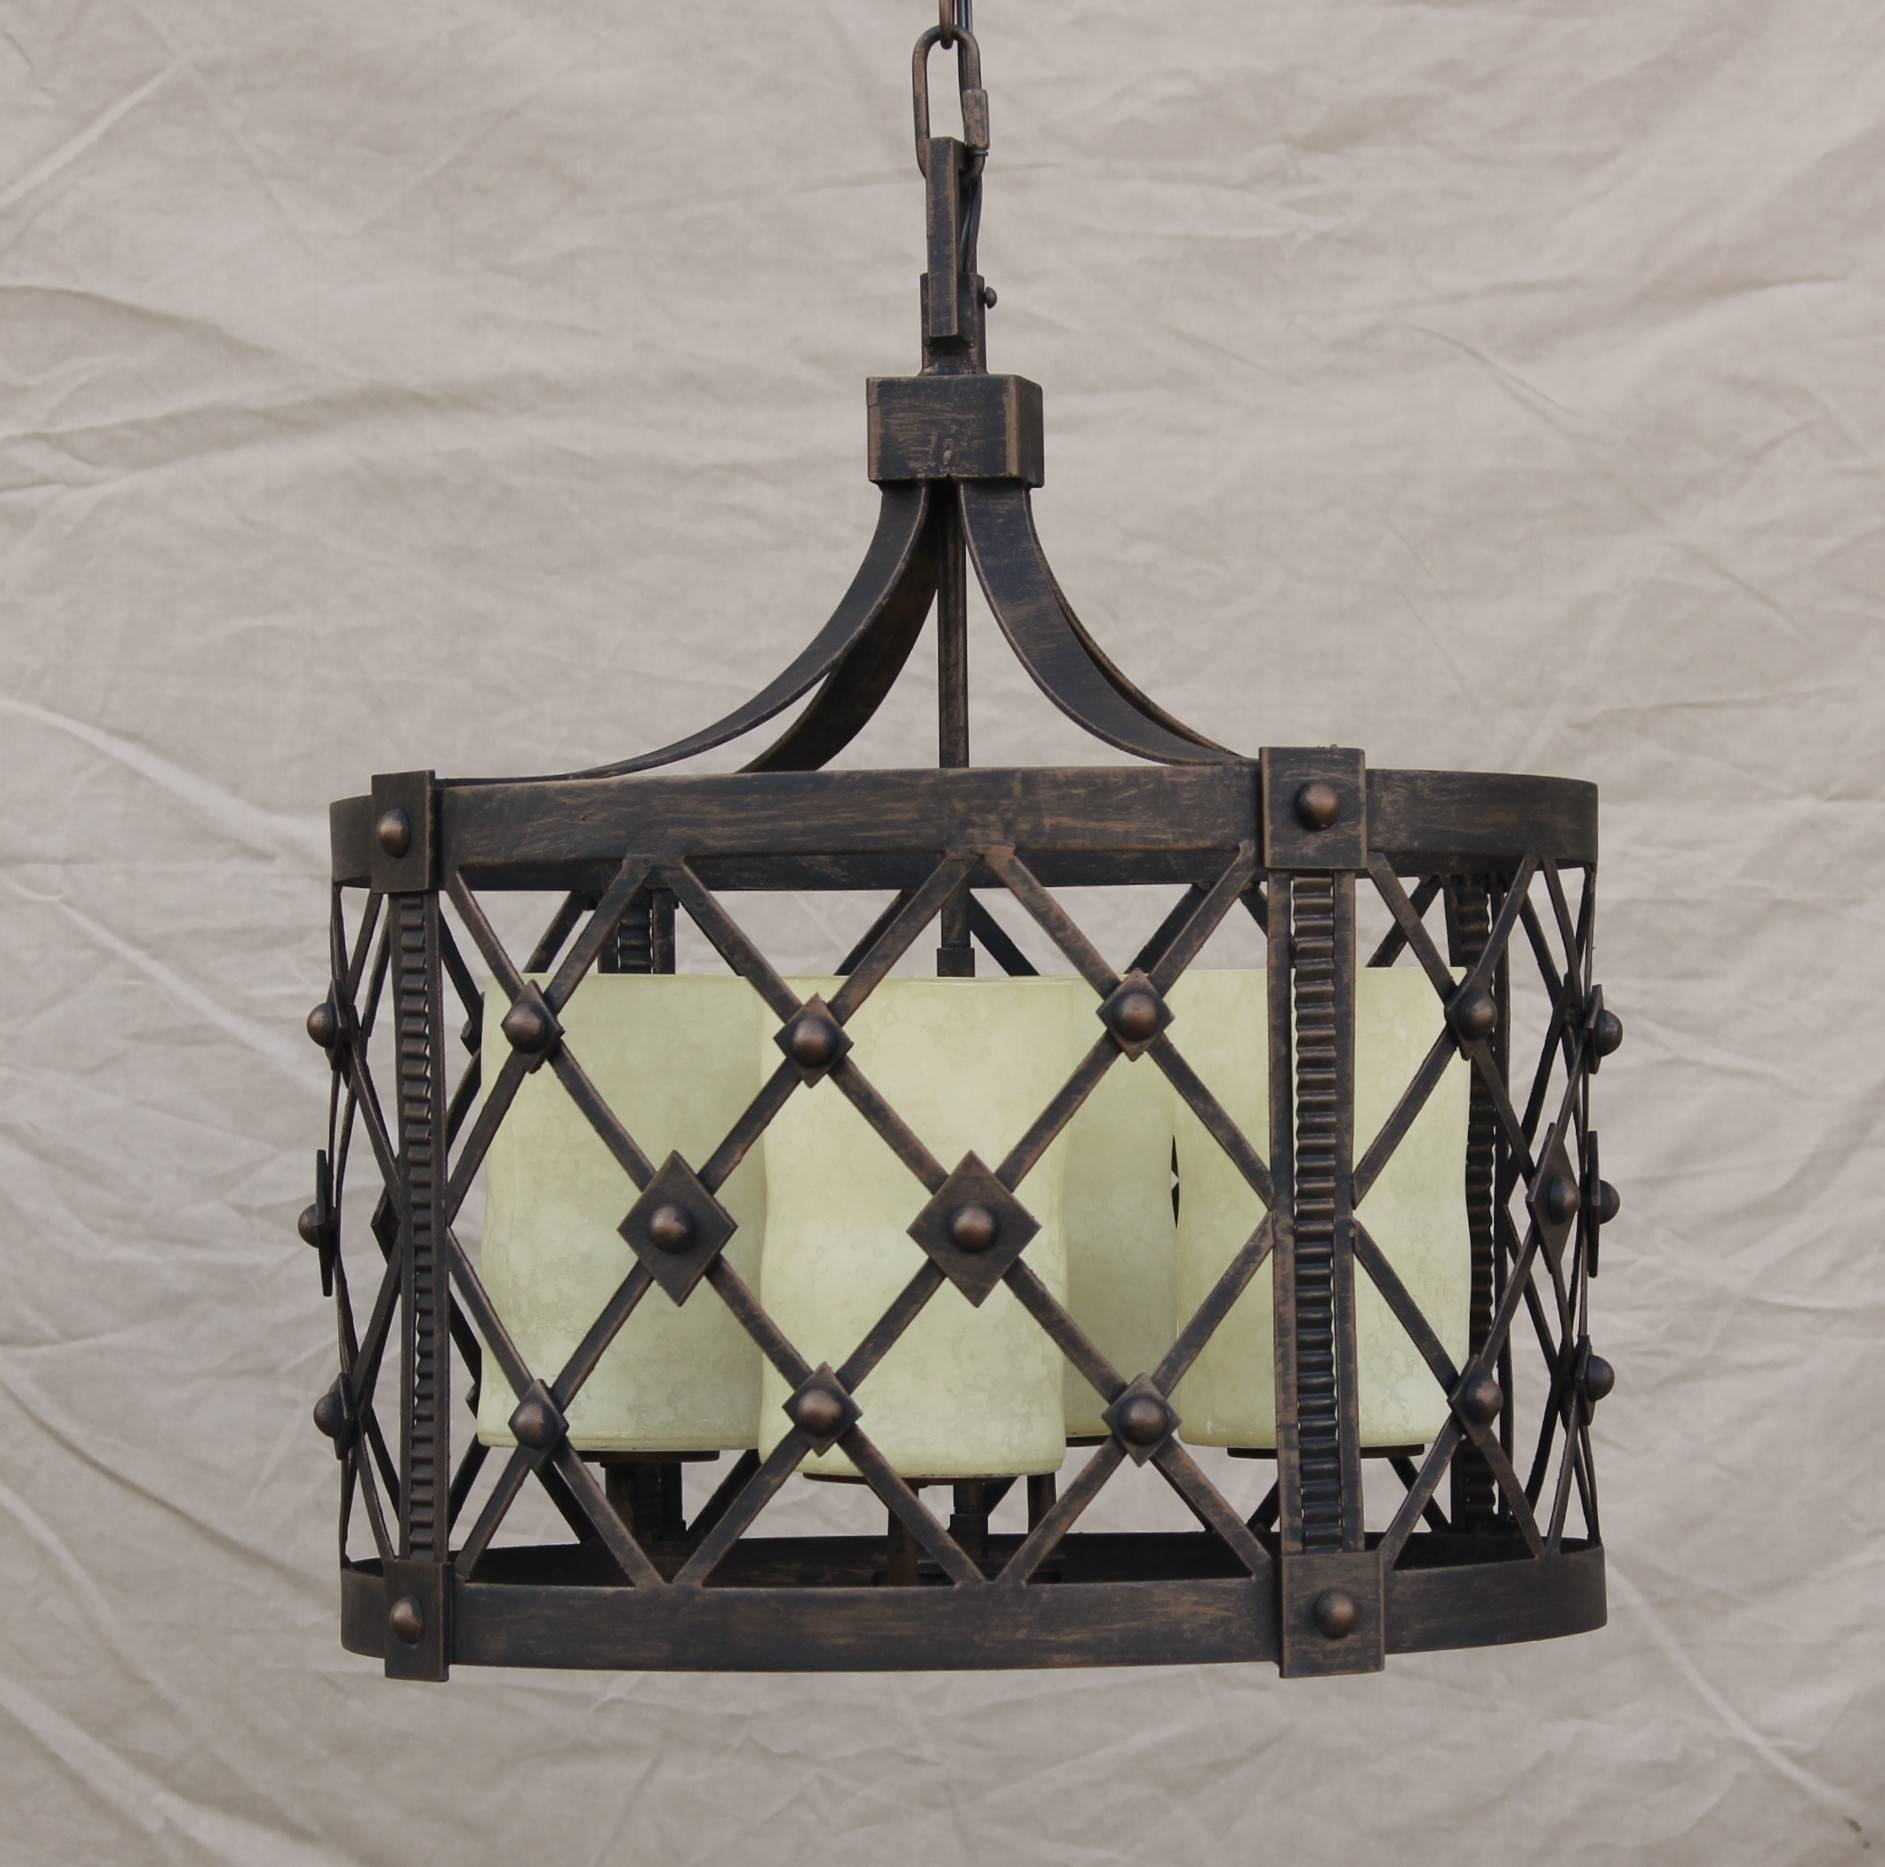 Amazing Of Wrought Iron Pendant Light Related To House Decor for Wrought Iron Lights Fixtures For Kitchens (Image 5 of 15)